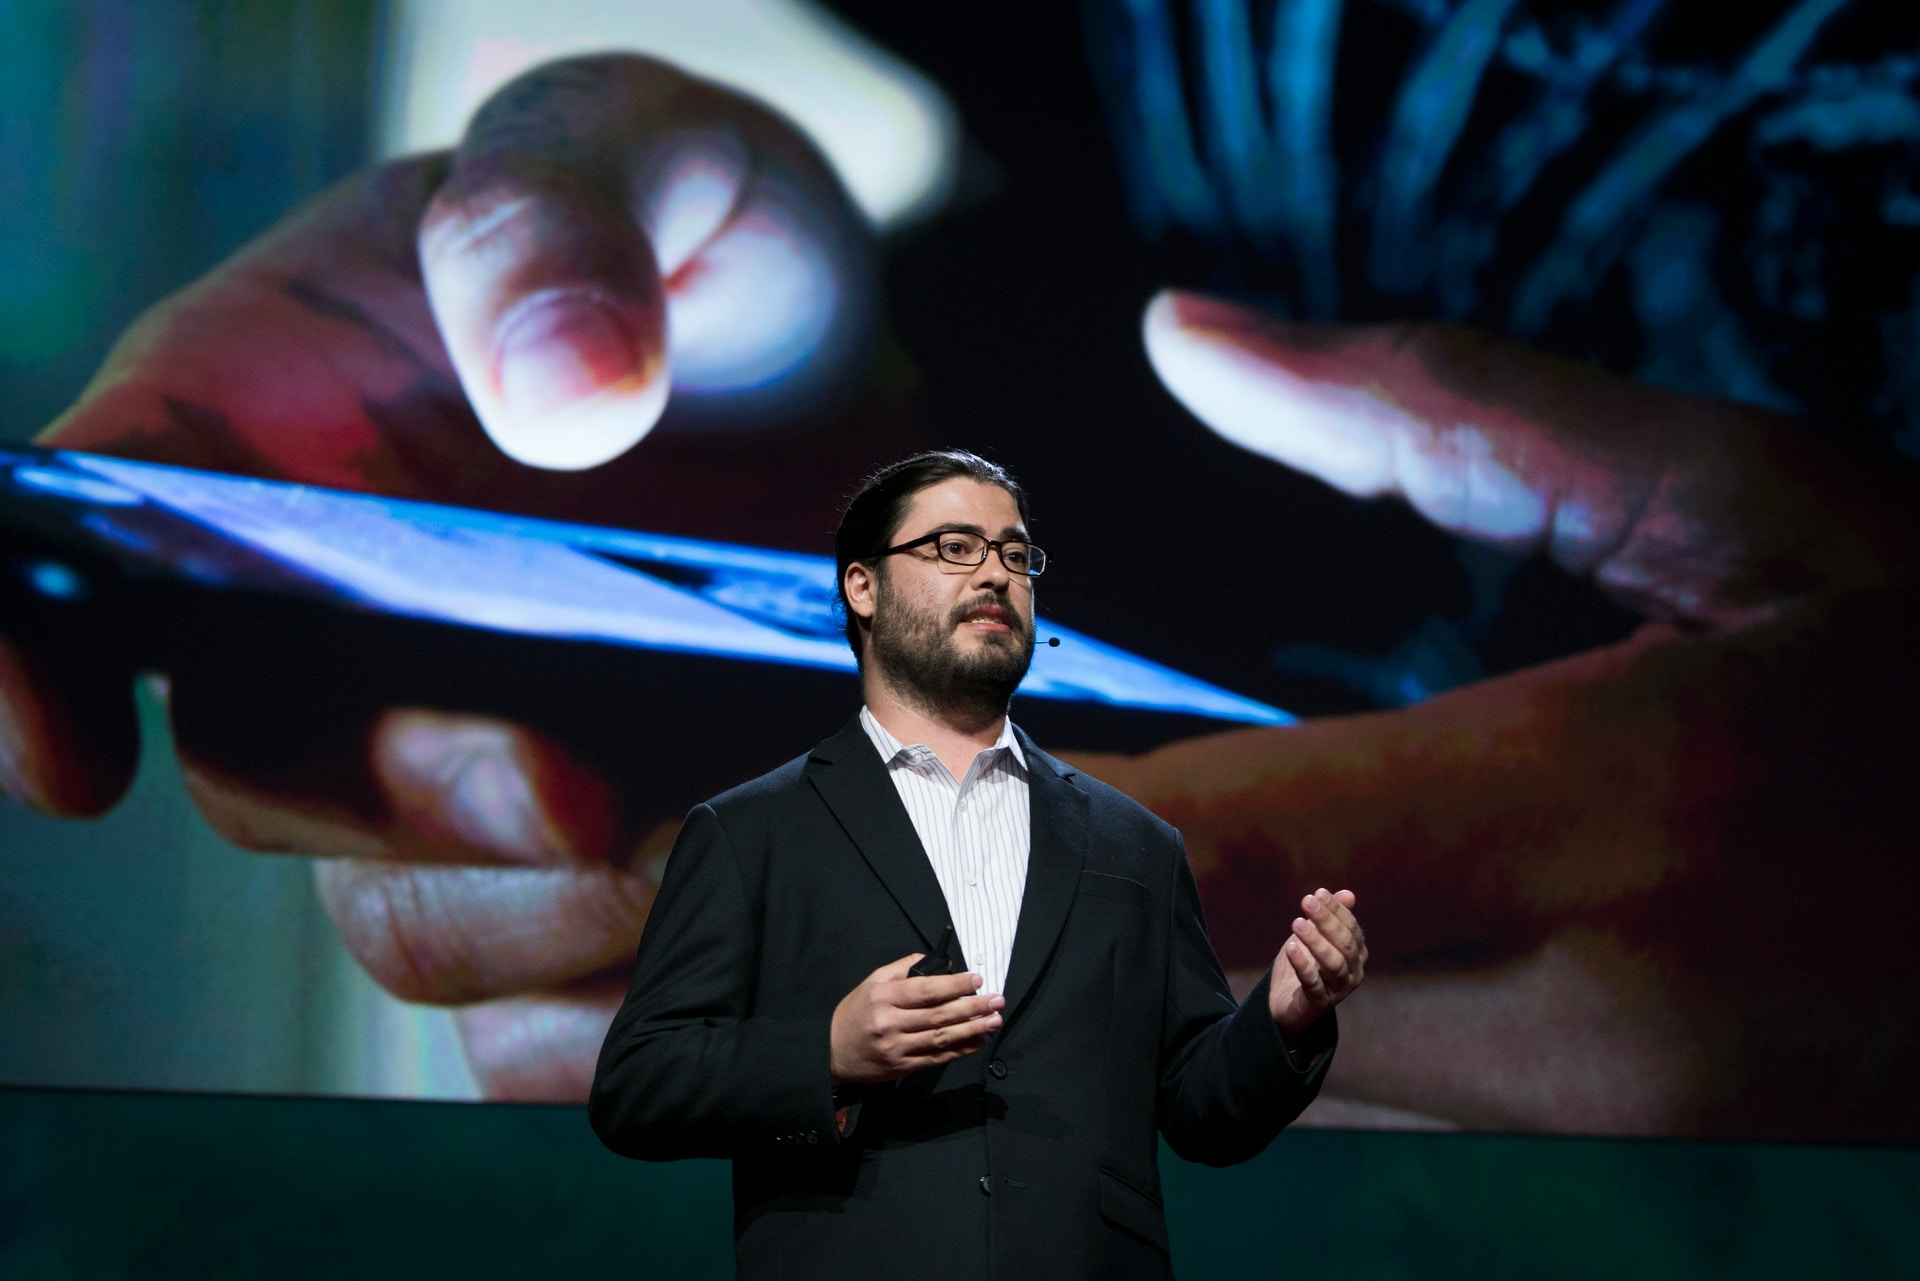 Chris Soghoian at TEDSummit2016, June 26 - 30, 2016, Banff, Canada. Photo: Bret Hartman / TED